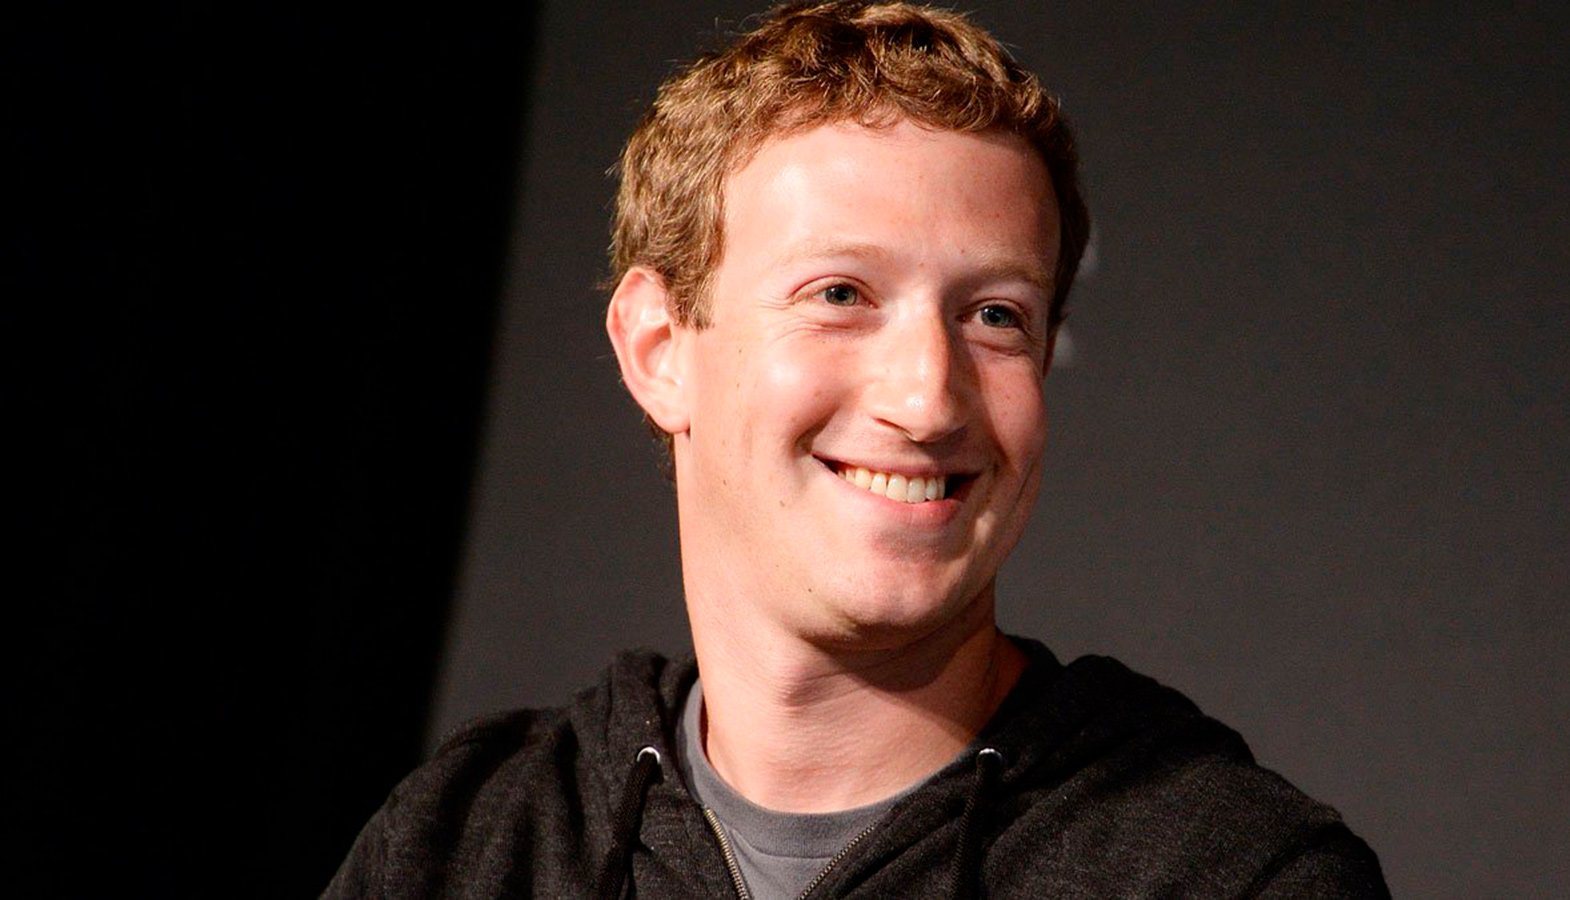 Mark Zuckerberg Intends To Warn Congress About The Benefits Of China's Weakening Of Facebook